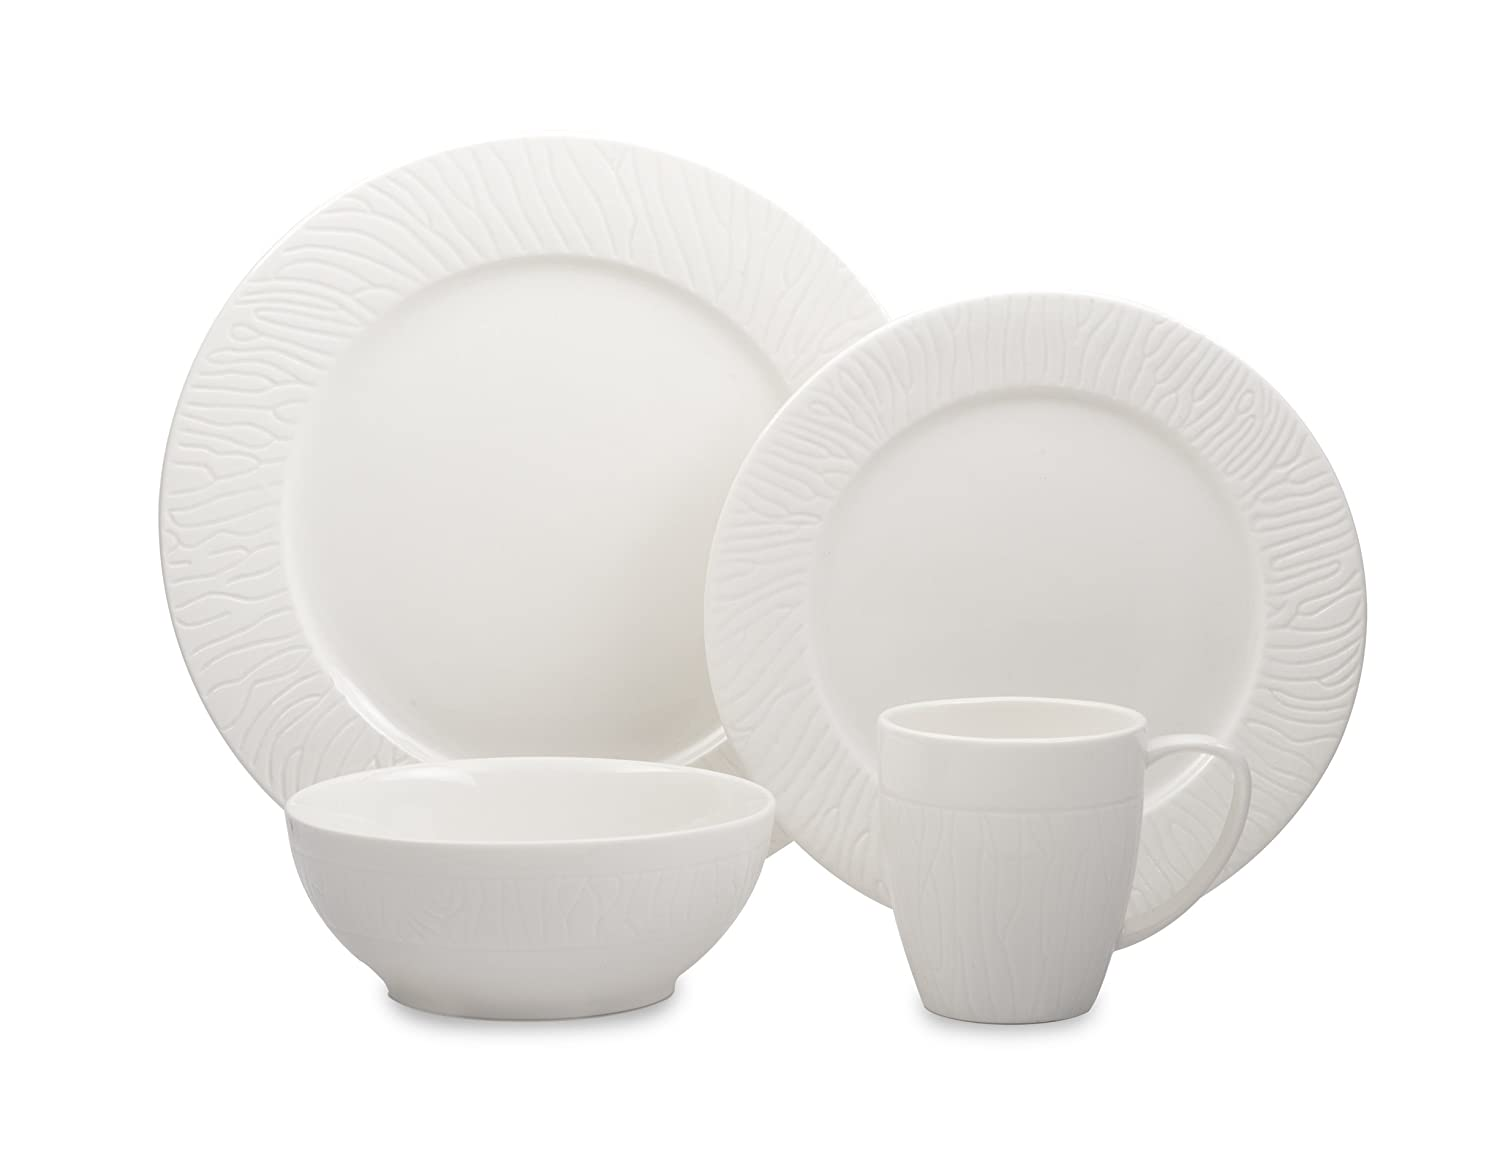 Cuisinart 16-Piece Dinnerware Set, Chailles Collection PO1-CHC